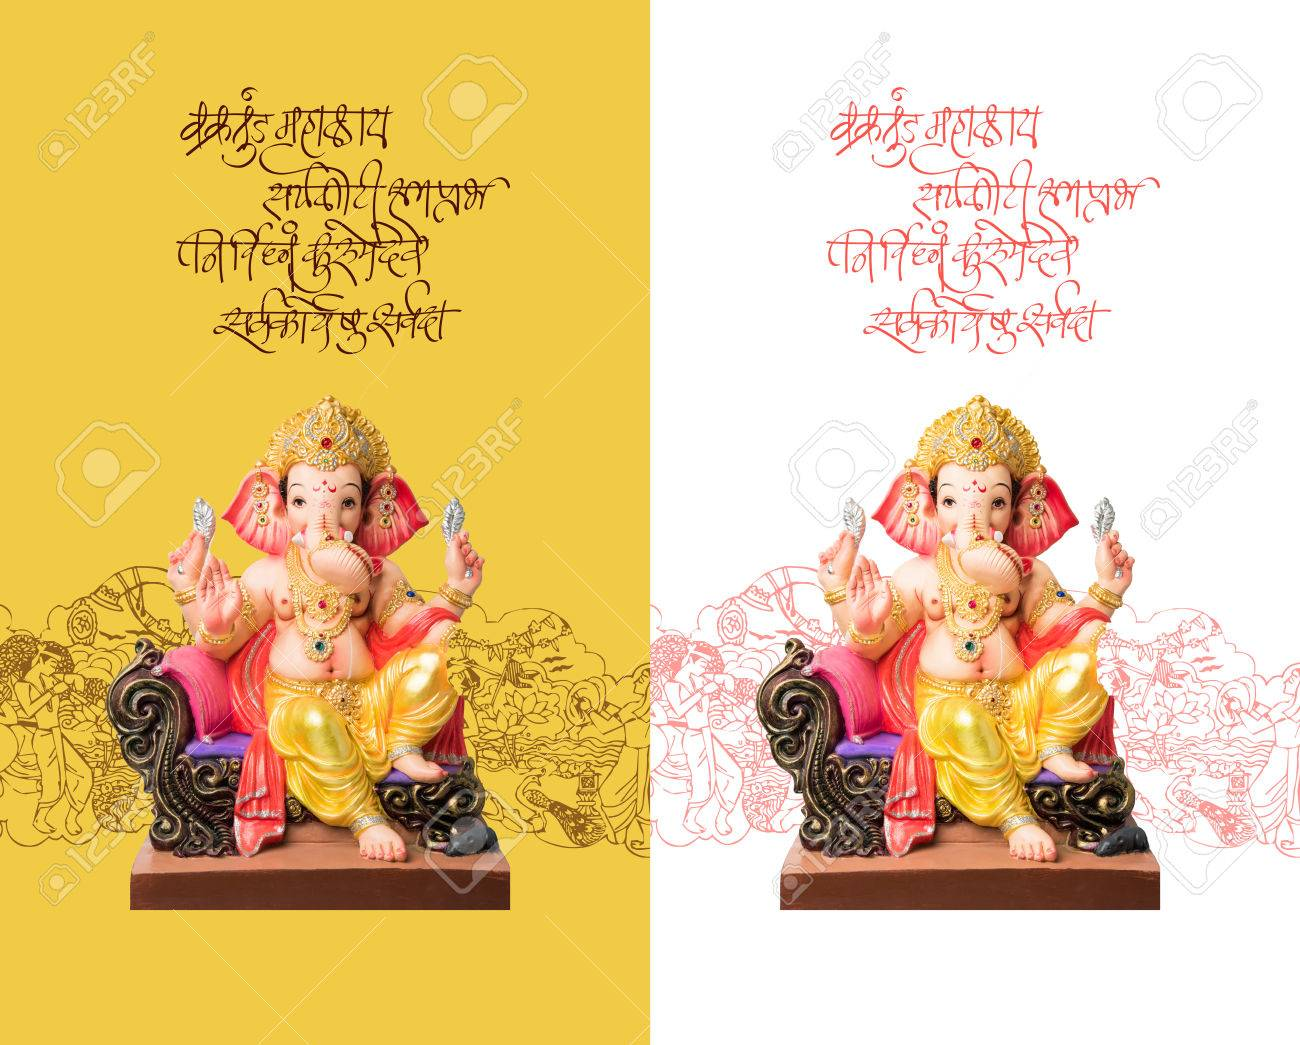 Ganapati or ganesh festival or happy ganesh chaturthi greeting ganapati or ganesh festival or happy ganesh chaturthi greeting card showing photograph of lshlokaord m4hsunfo